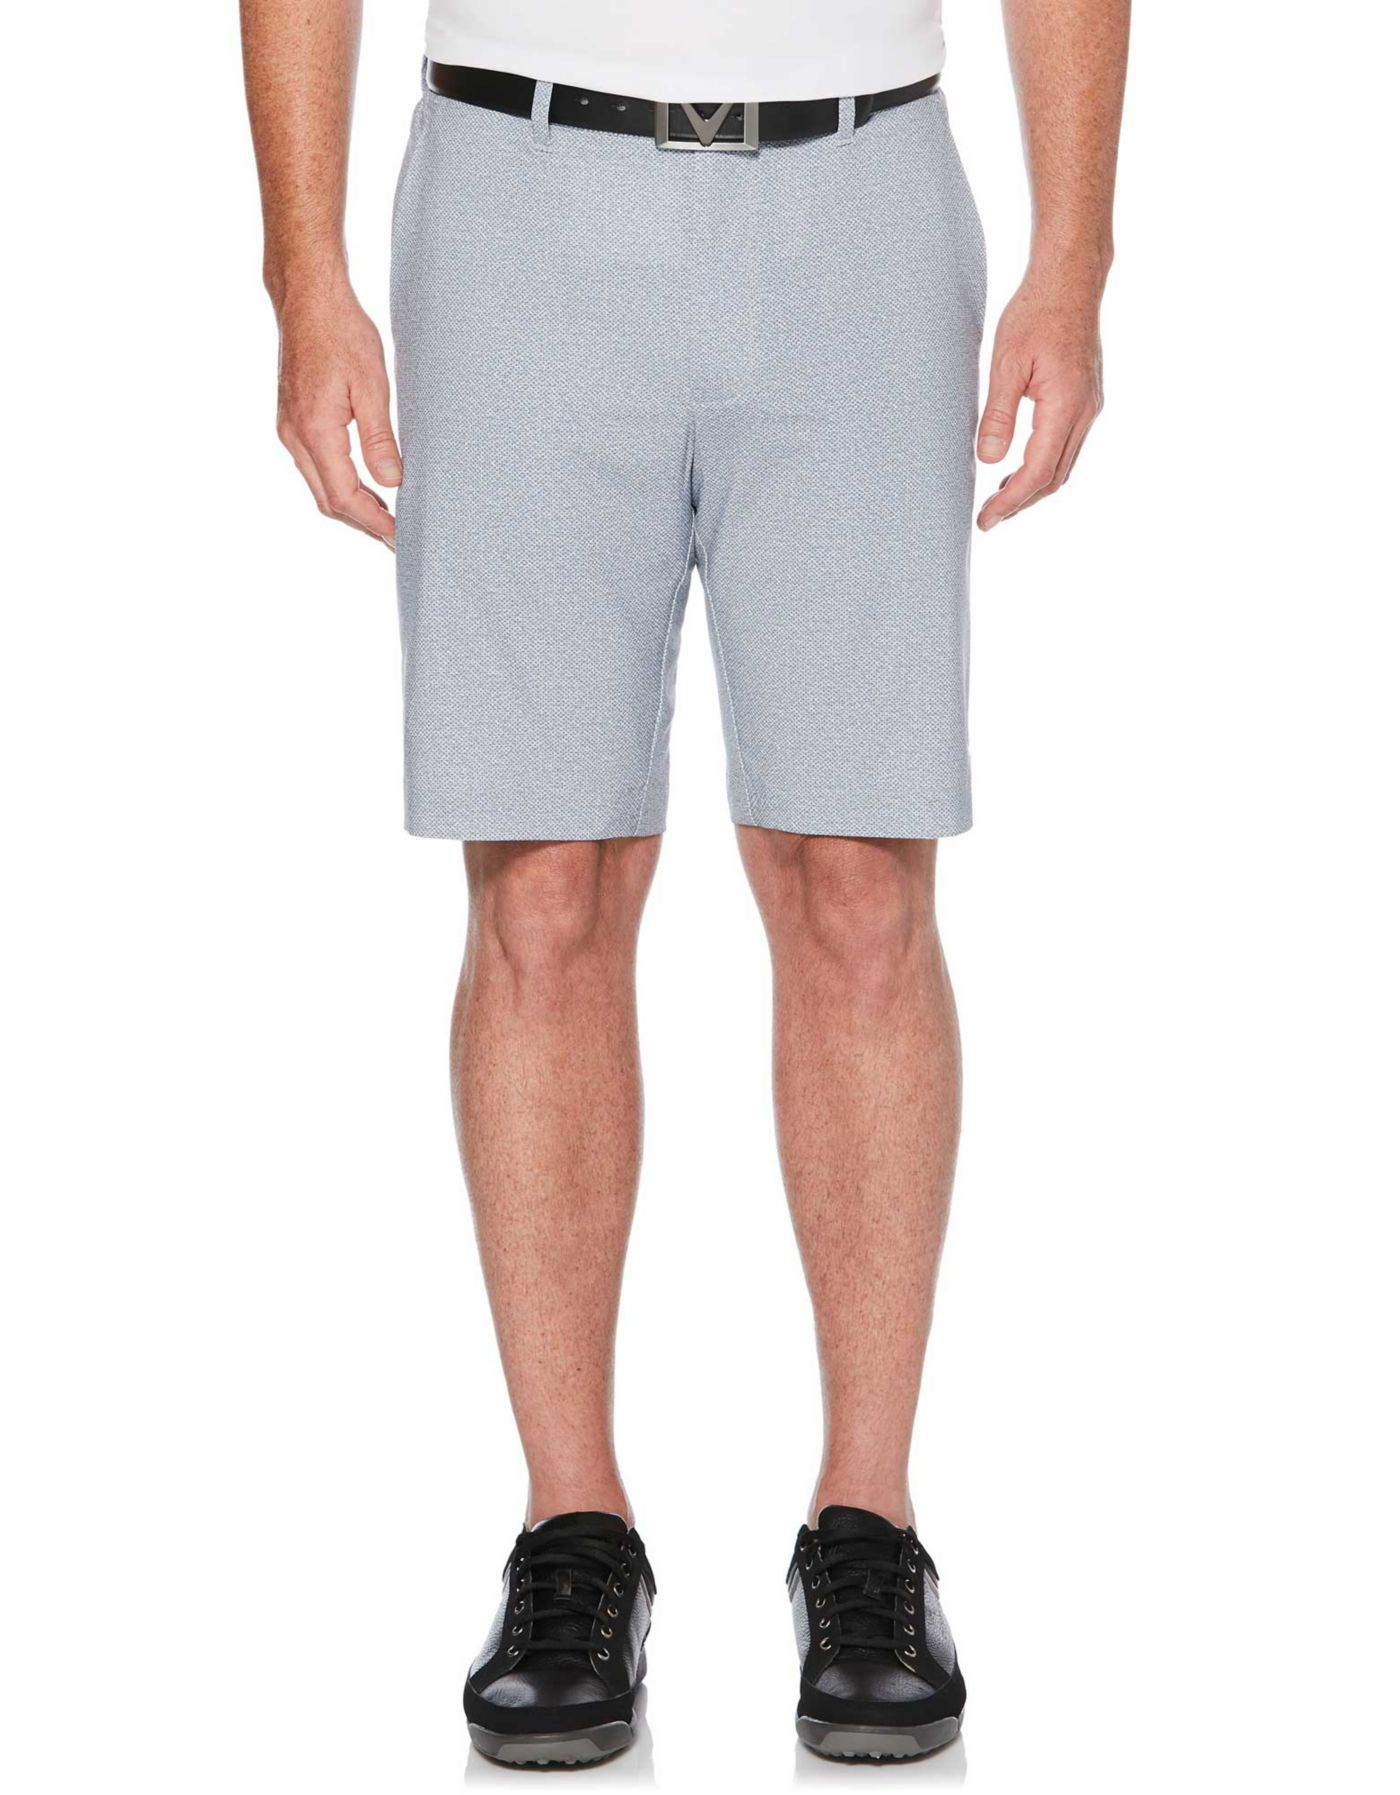 Callaway Men's Textured Print Golf Shorts